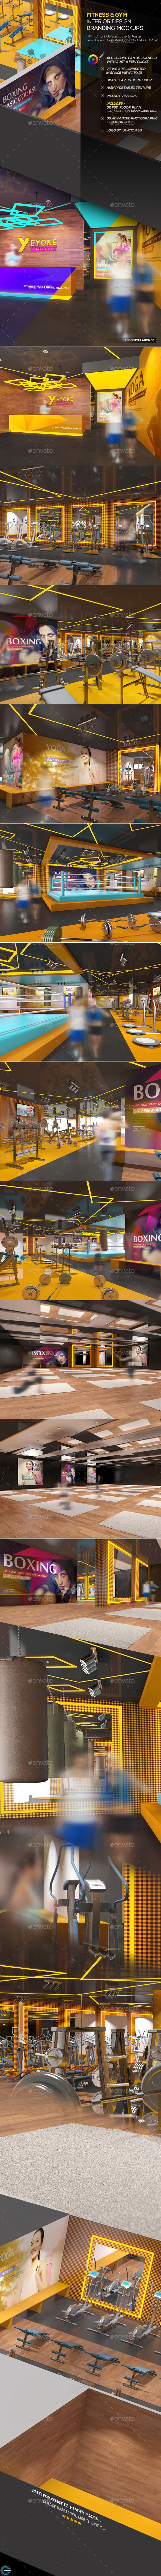 fitness gym interior design branding mockups on behance